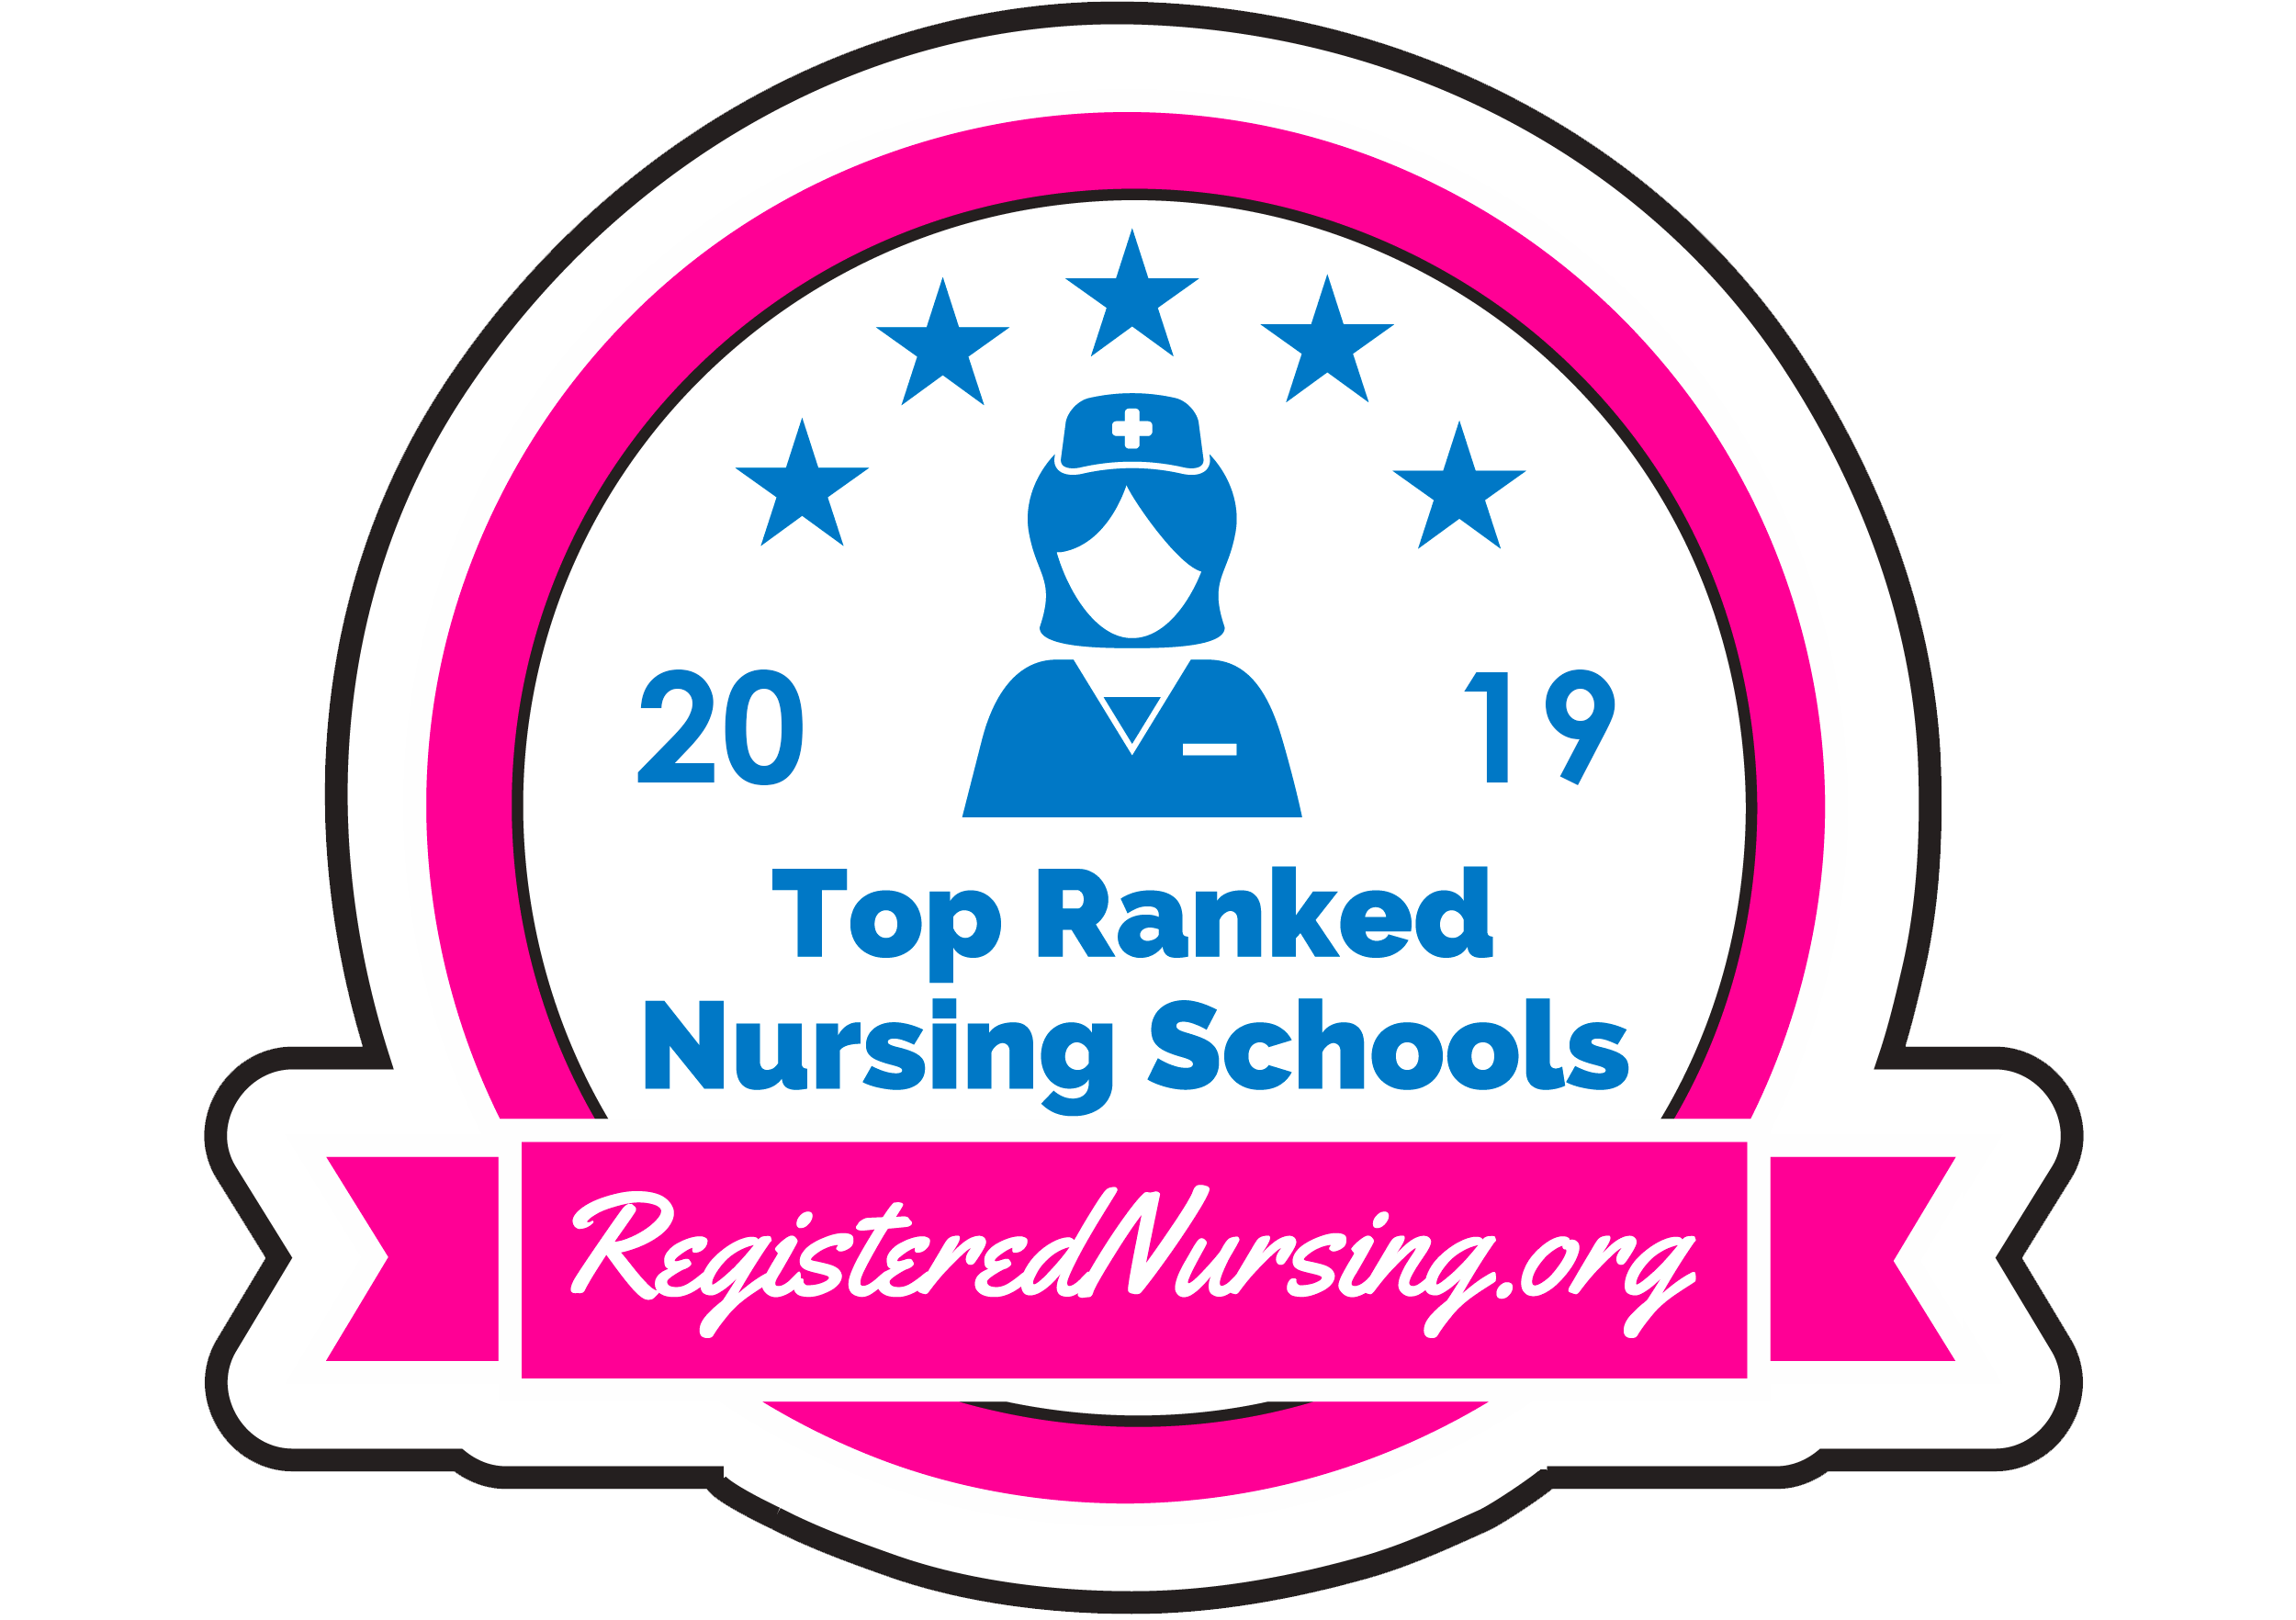 College chosen because of historically high NCLEX-RN pass rates.